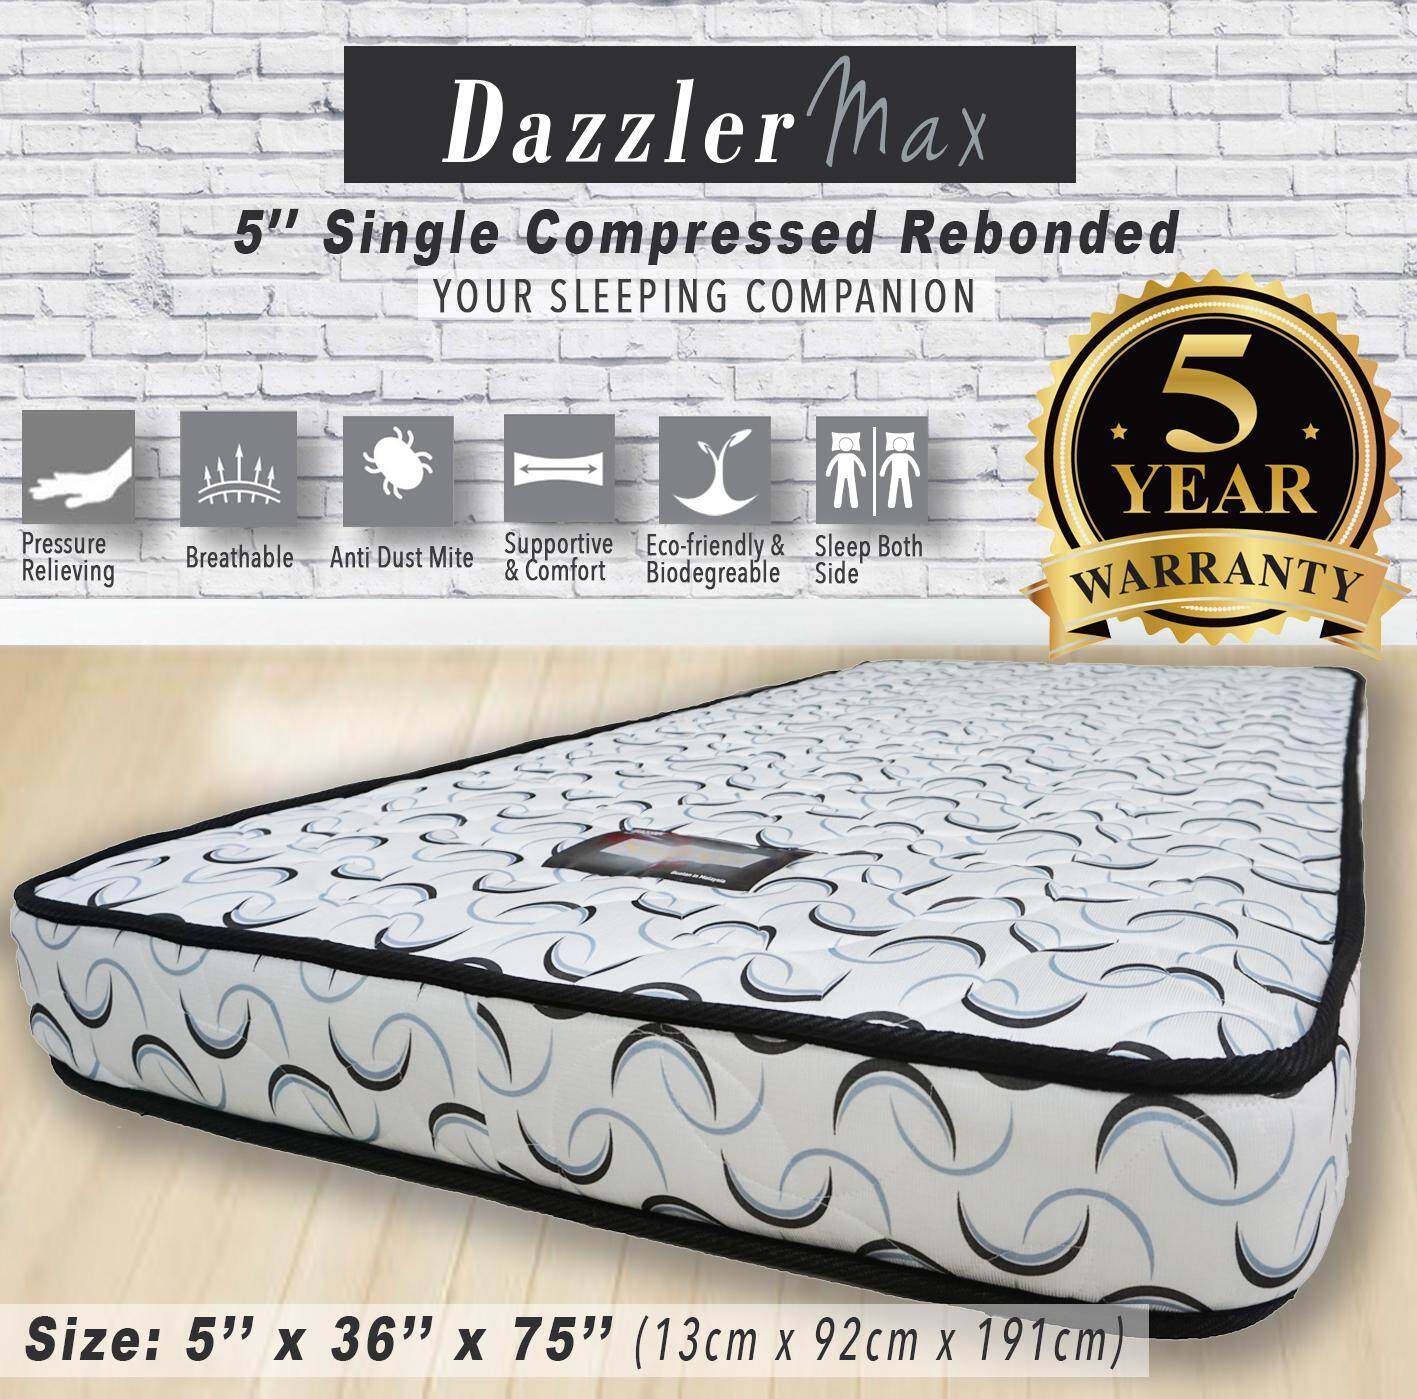 Dazzler Max 5 High Quality Single Compressed Rebonded Mattress Bed Tilam 5 years Warranty